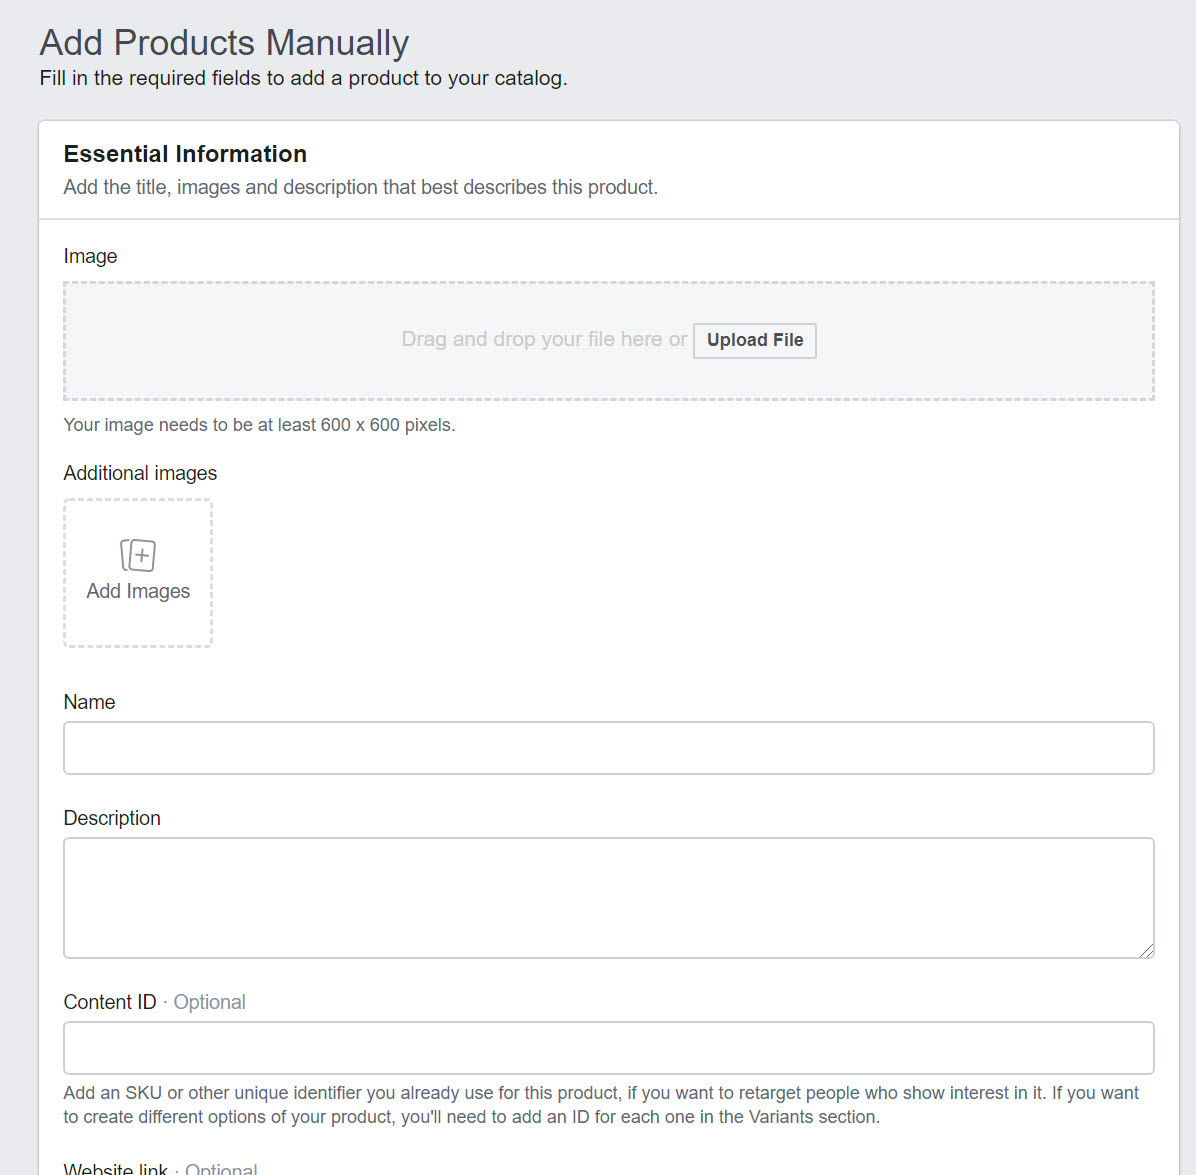 add products manually